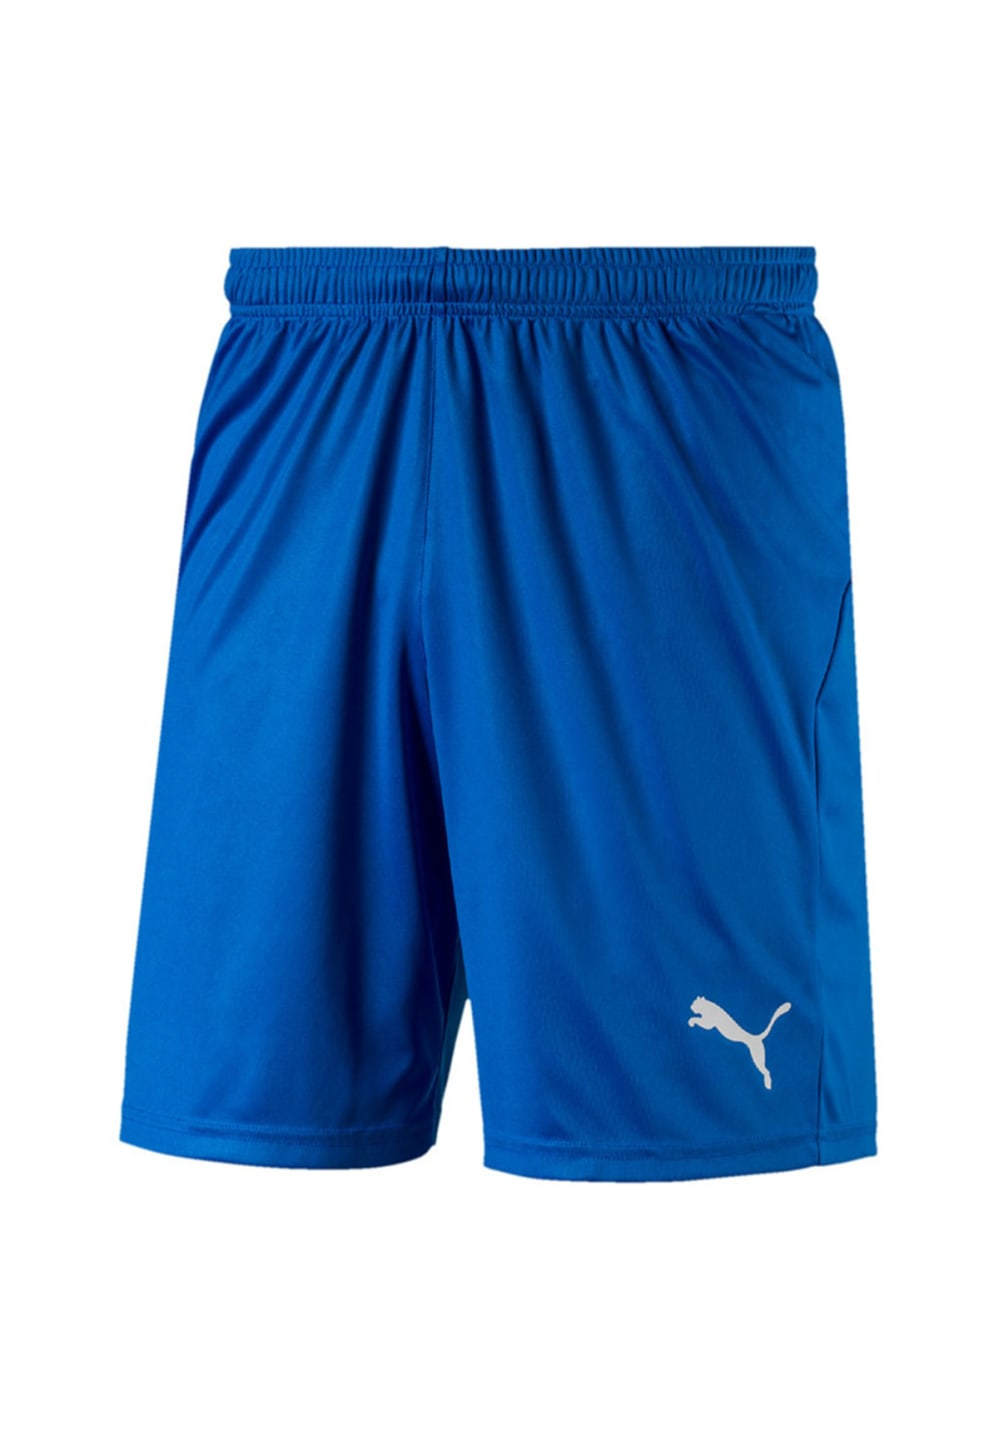 4eac1269cc10 ... Puma Liga Shorts Core - Running trousers for Men - Blue. Back to  Overview. -50%